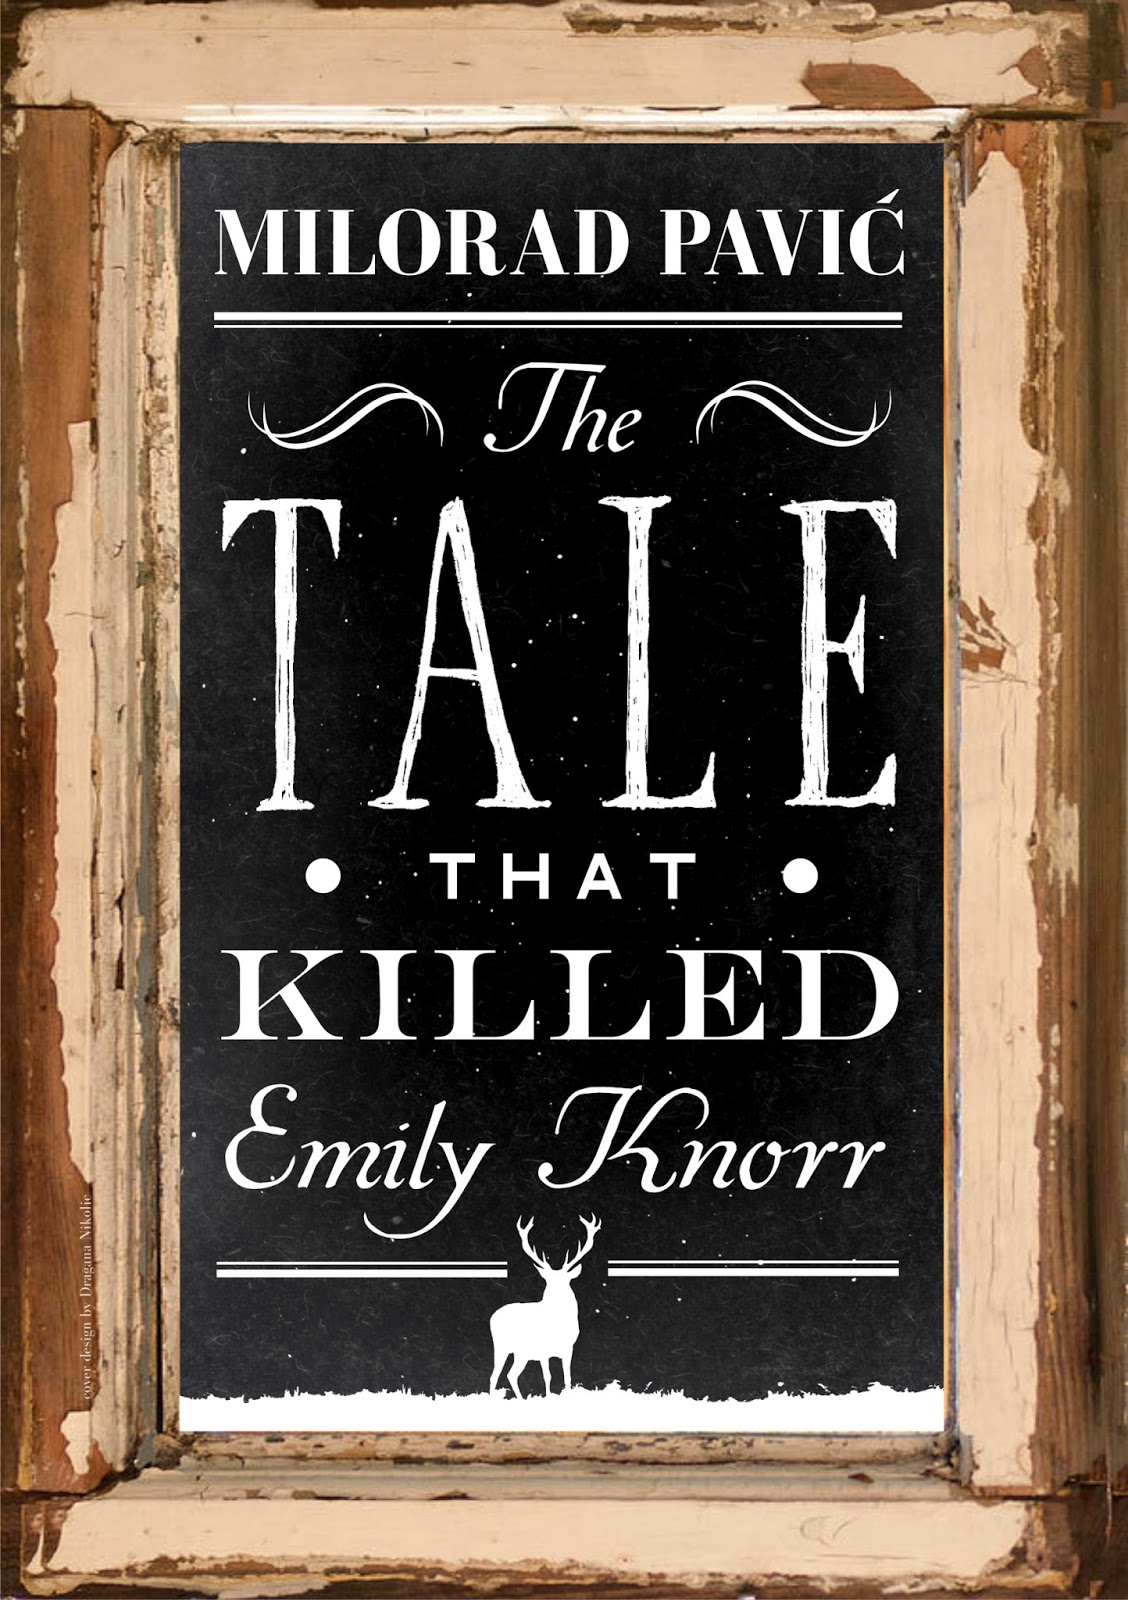 http://www.amazon.com/Tale-That-Killed-Emily-Knorr-ebook/dp/B007R0NSSW